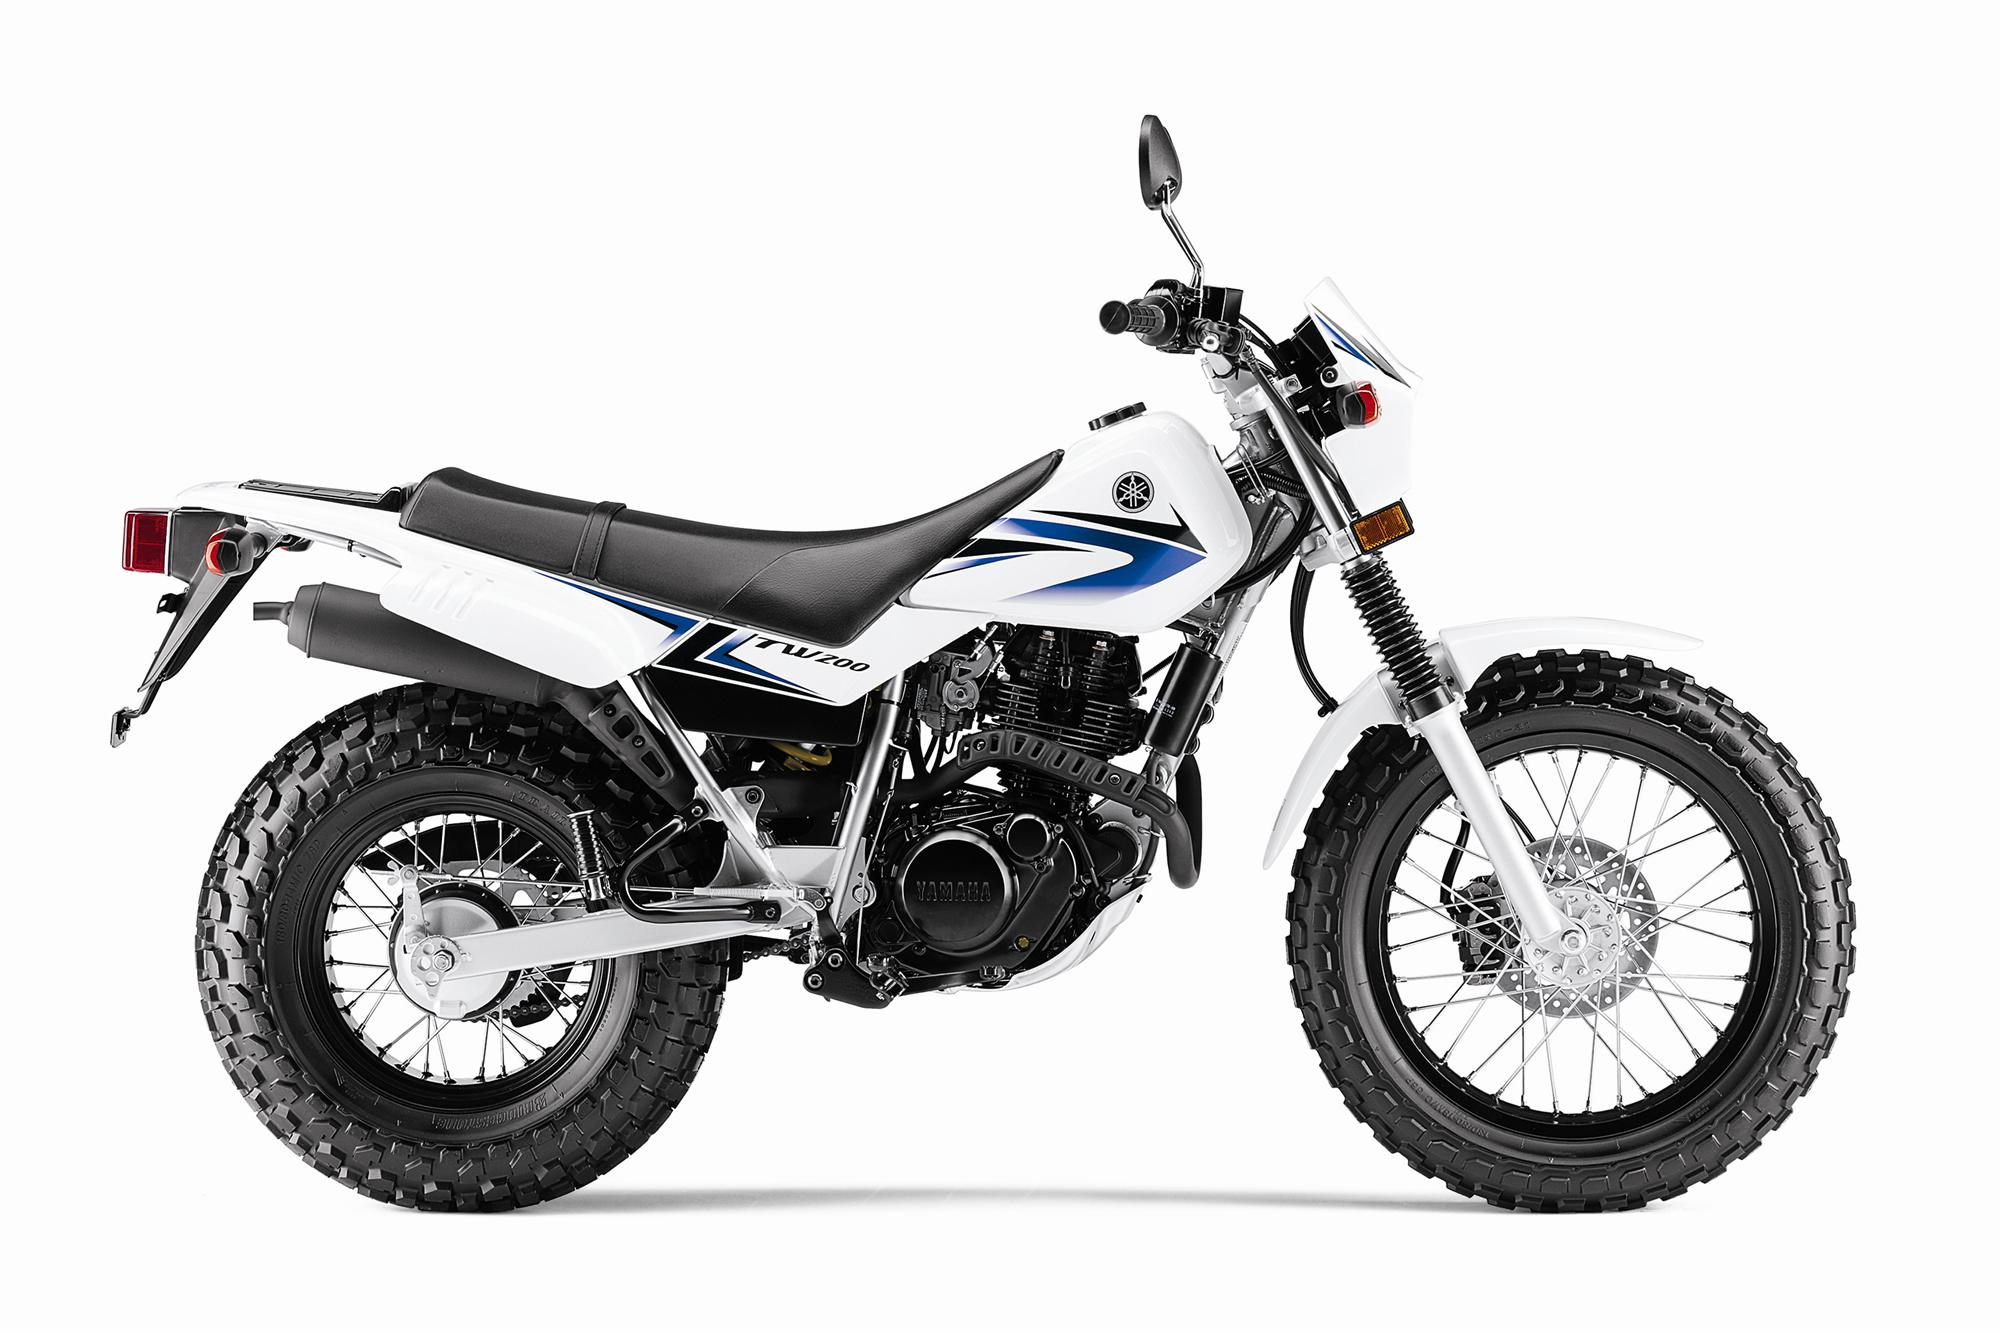 Yamaha Tw200 Is Still A Spectacularly Fun Bike